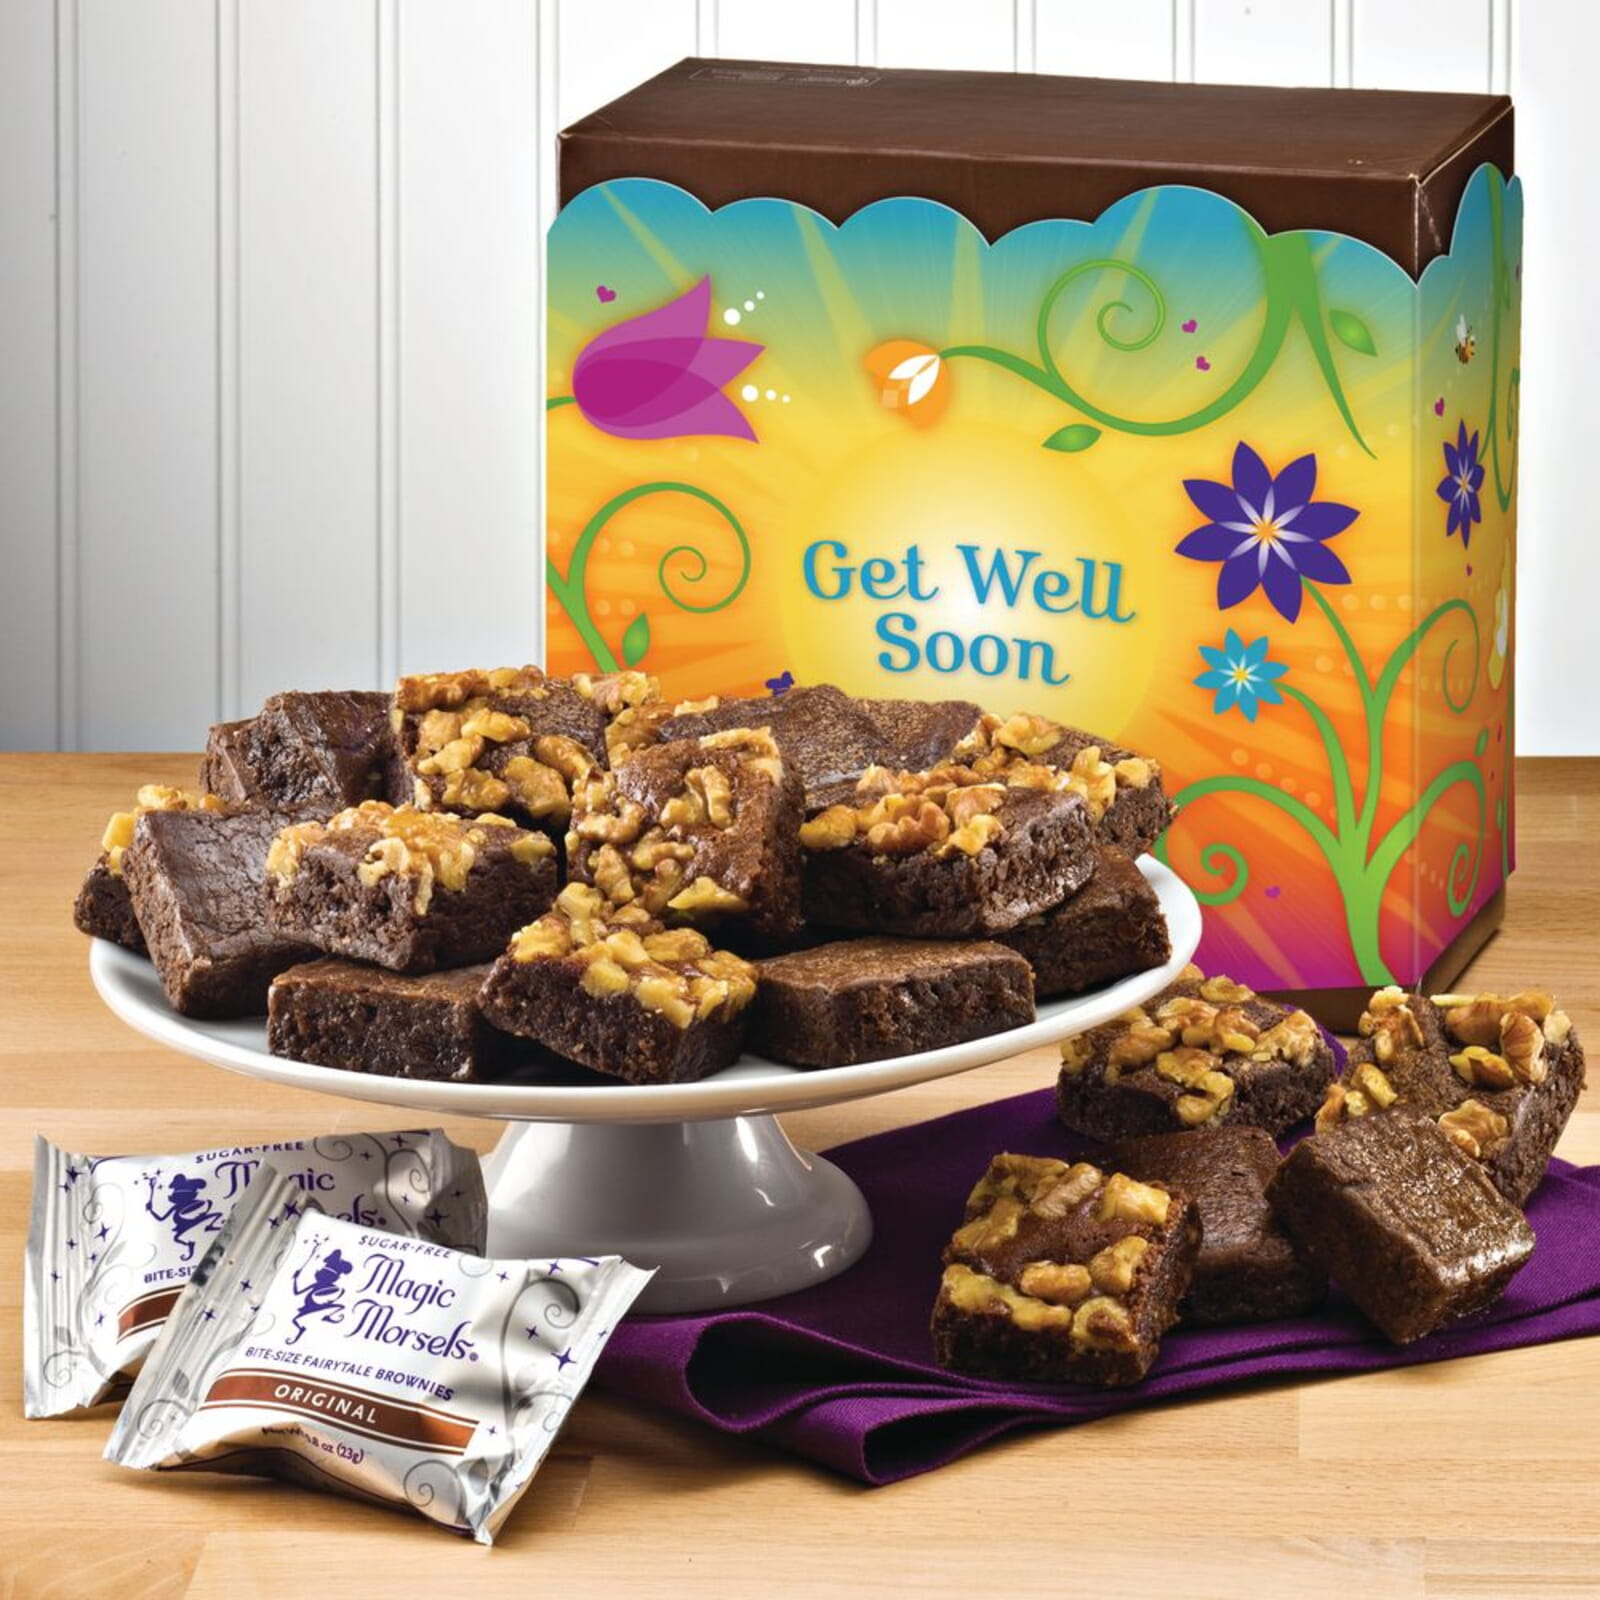 Get Well Sugar-Free Morsel 48